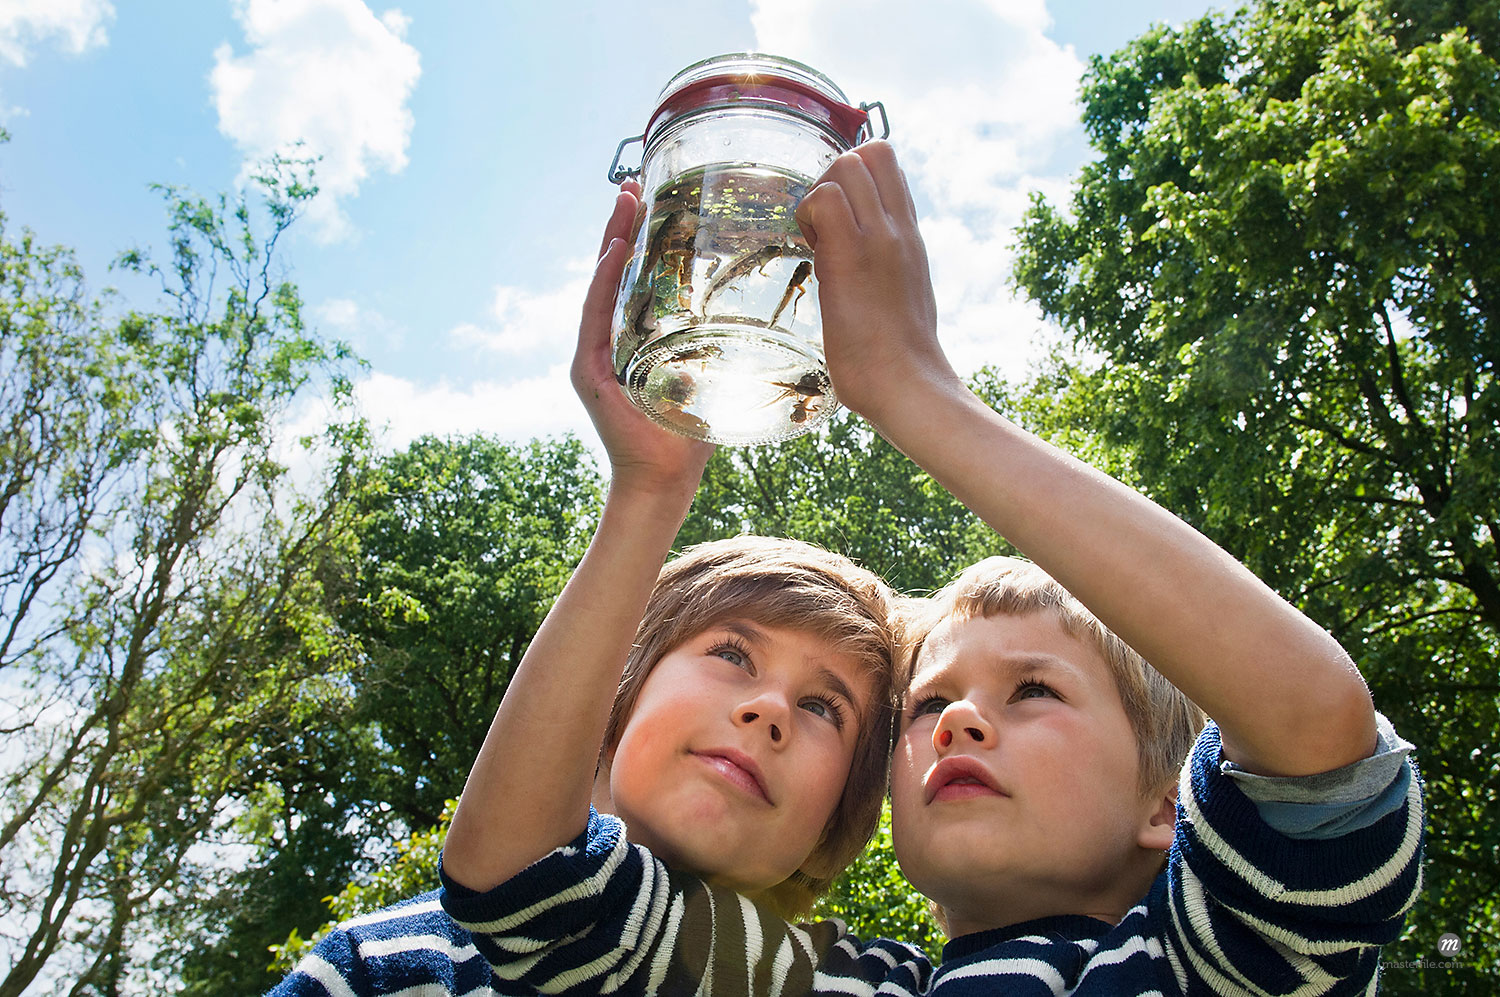 Two boys looking at tadpoles in a glass jar © Masterfile